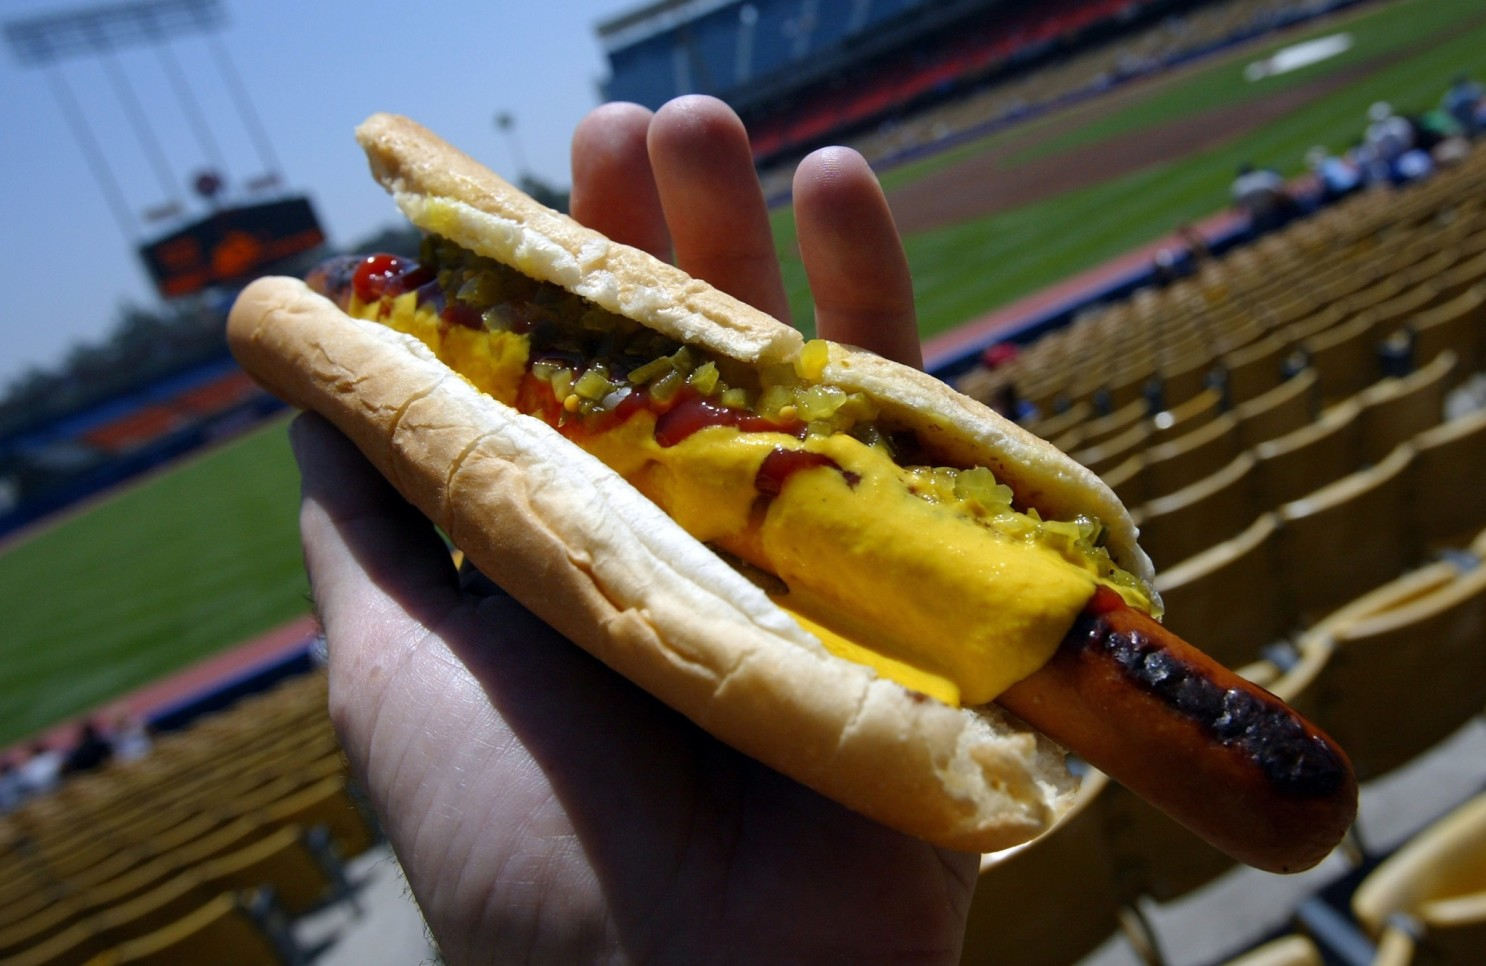 New service will deliver Dodger Dogs, other stadium food to select areas in LA